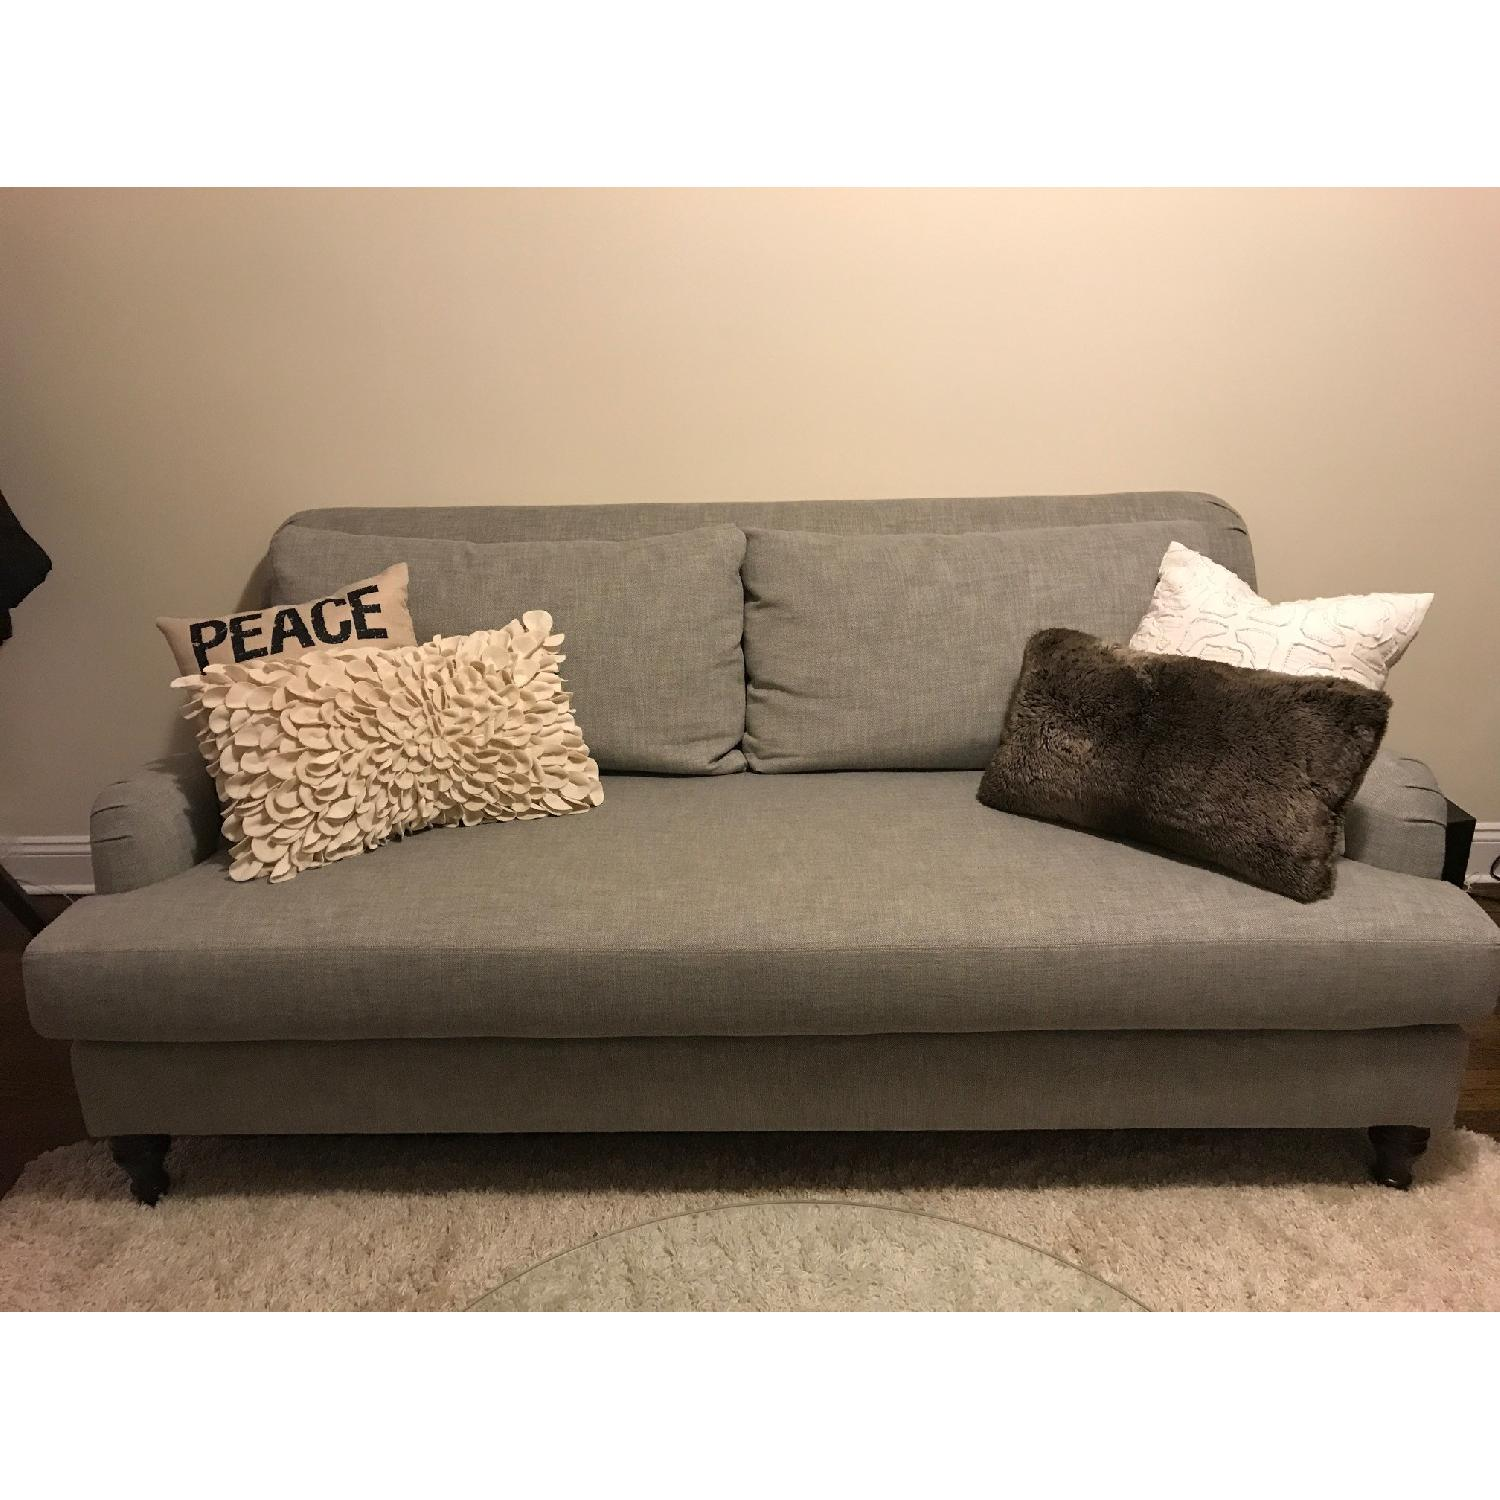 Pottery Barn Carlisle Upholstered Sofa-0